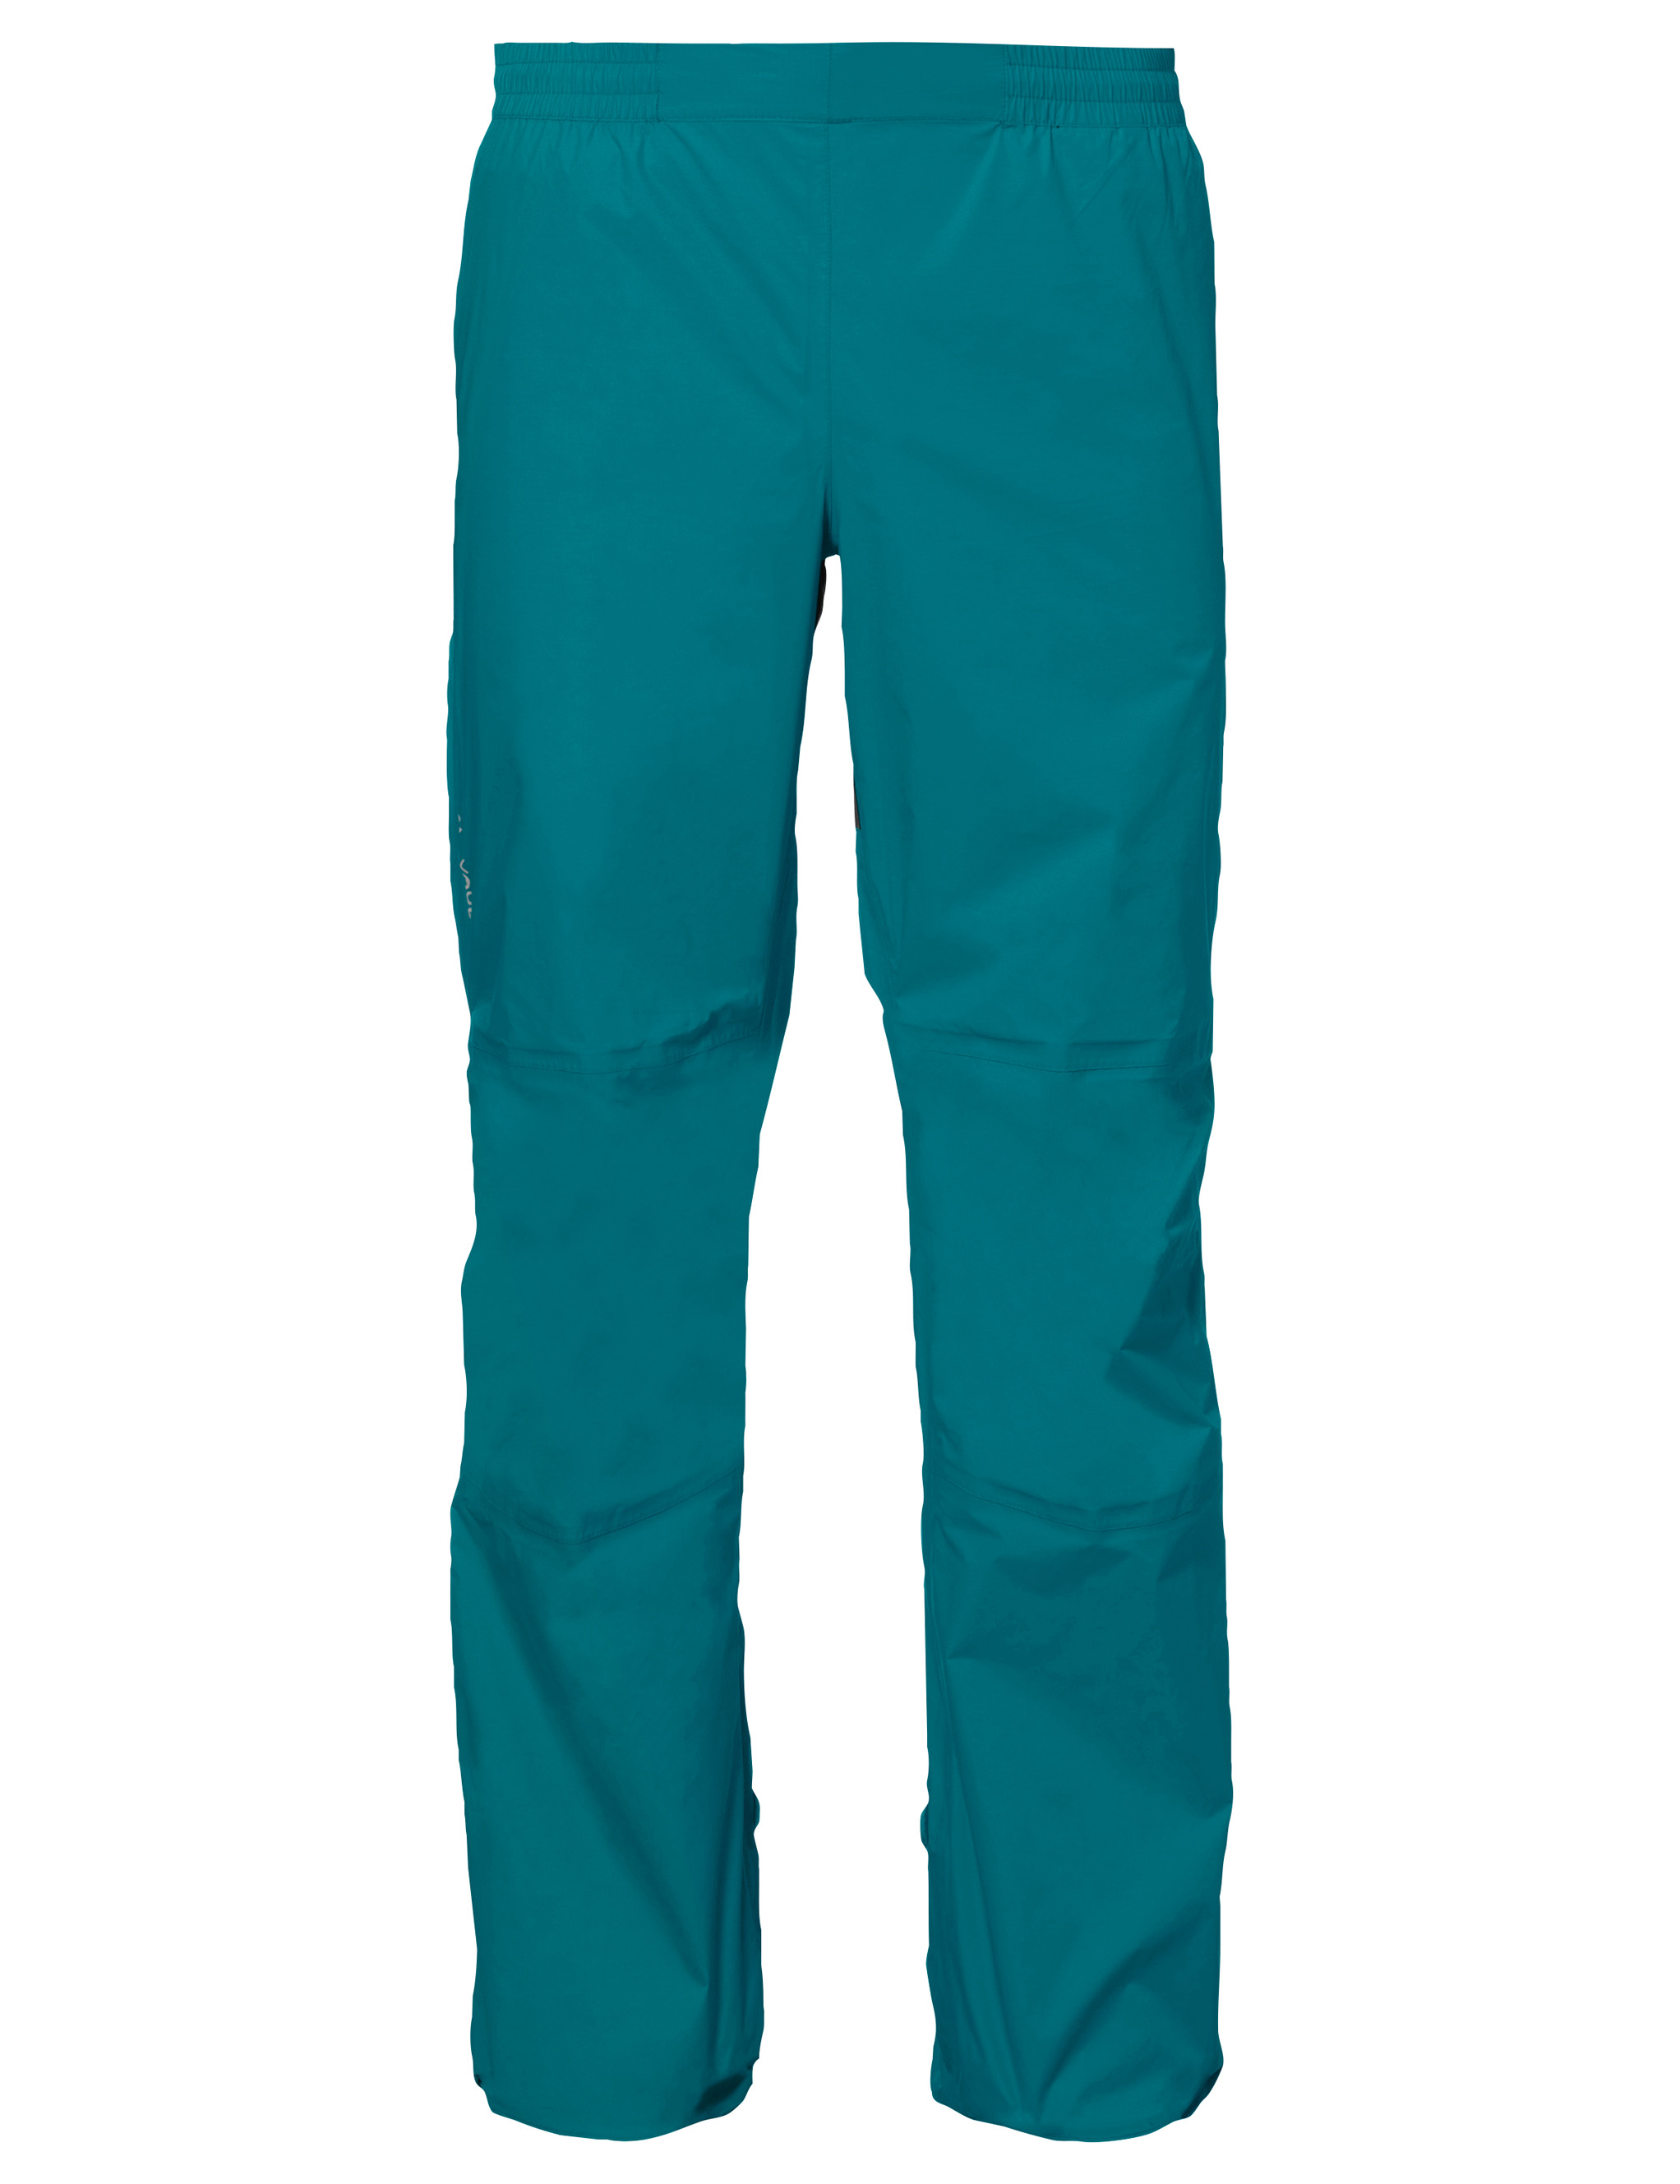 VAUDE Men´s Drop Pants II green spinel Größe L - schneider-sports